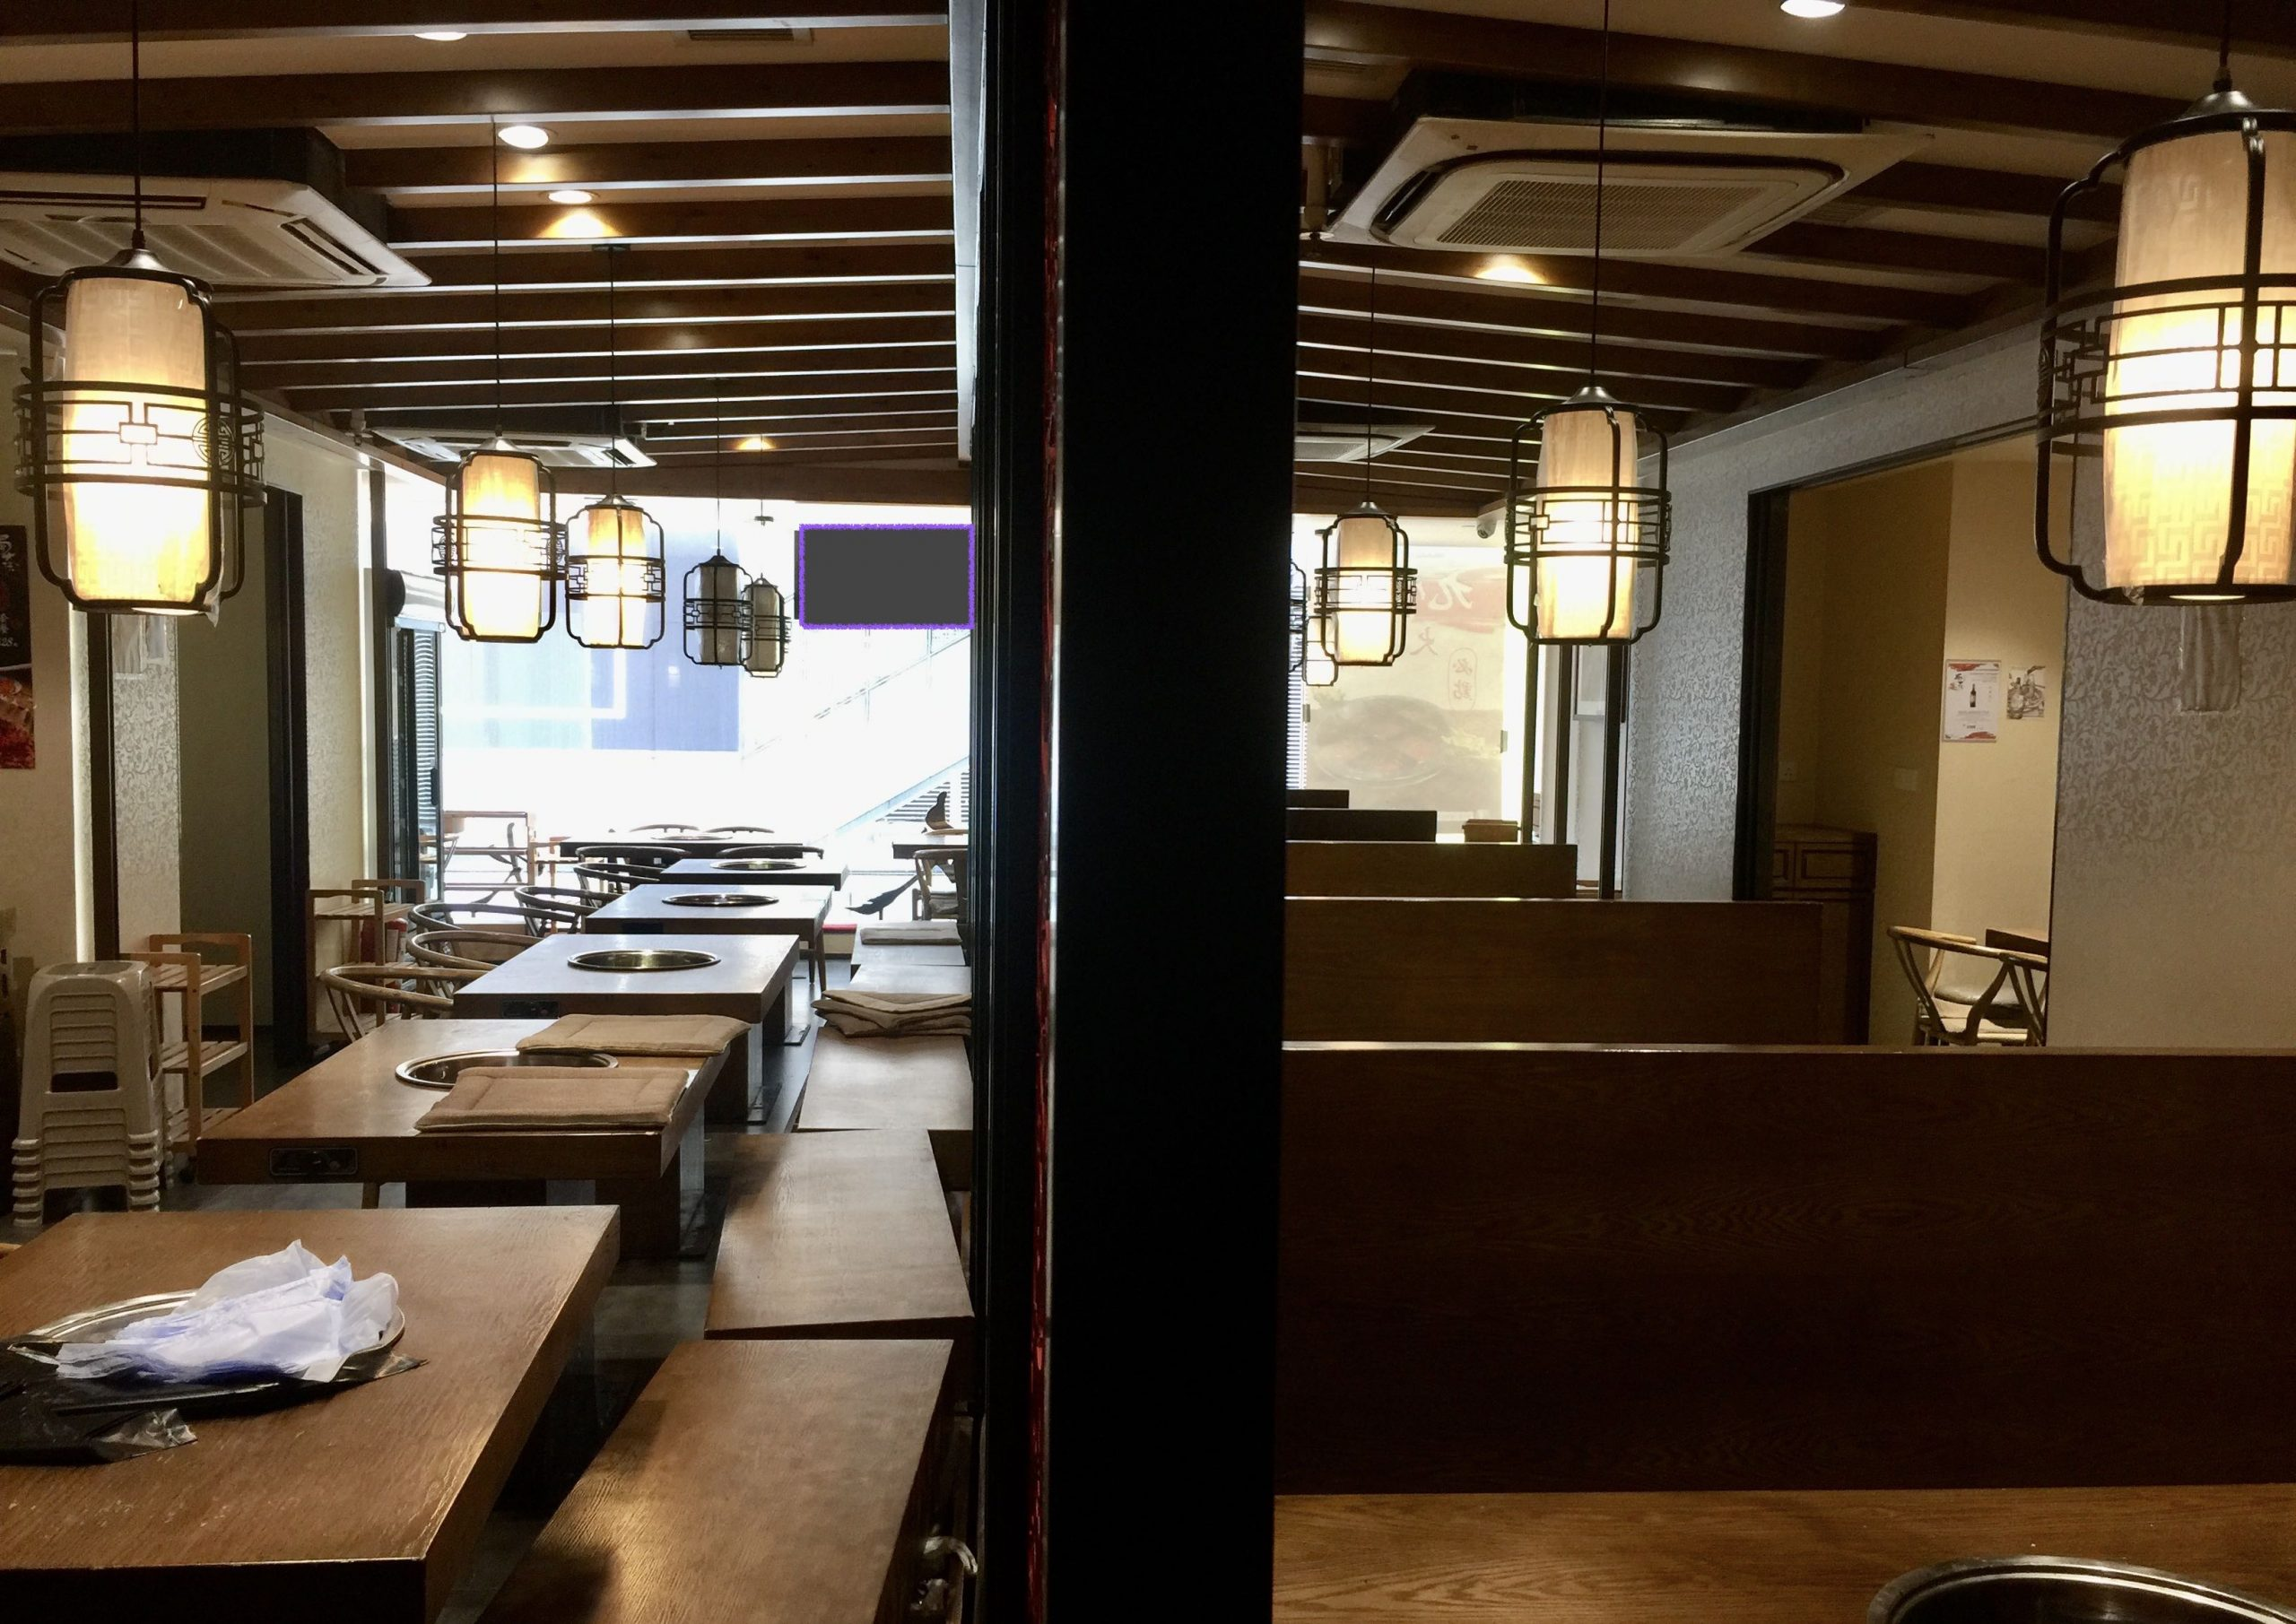 HK Causeway Bay Restaurant for Rent with fitting